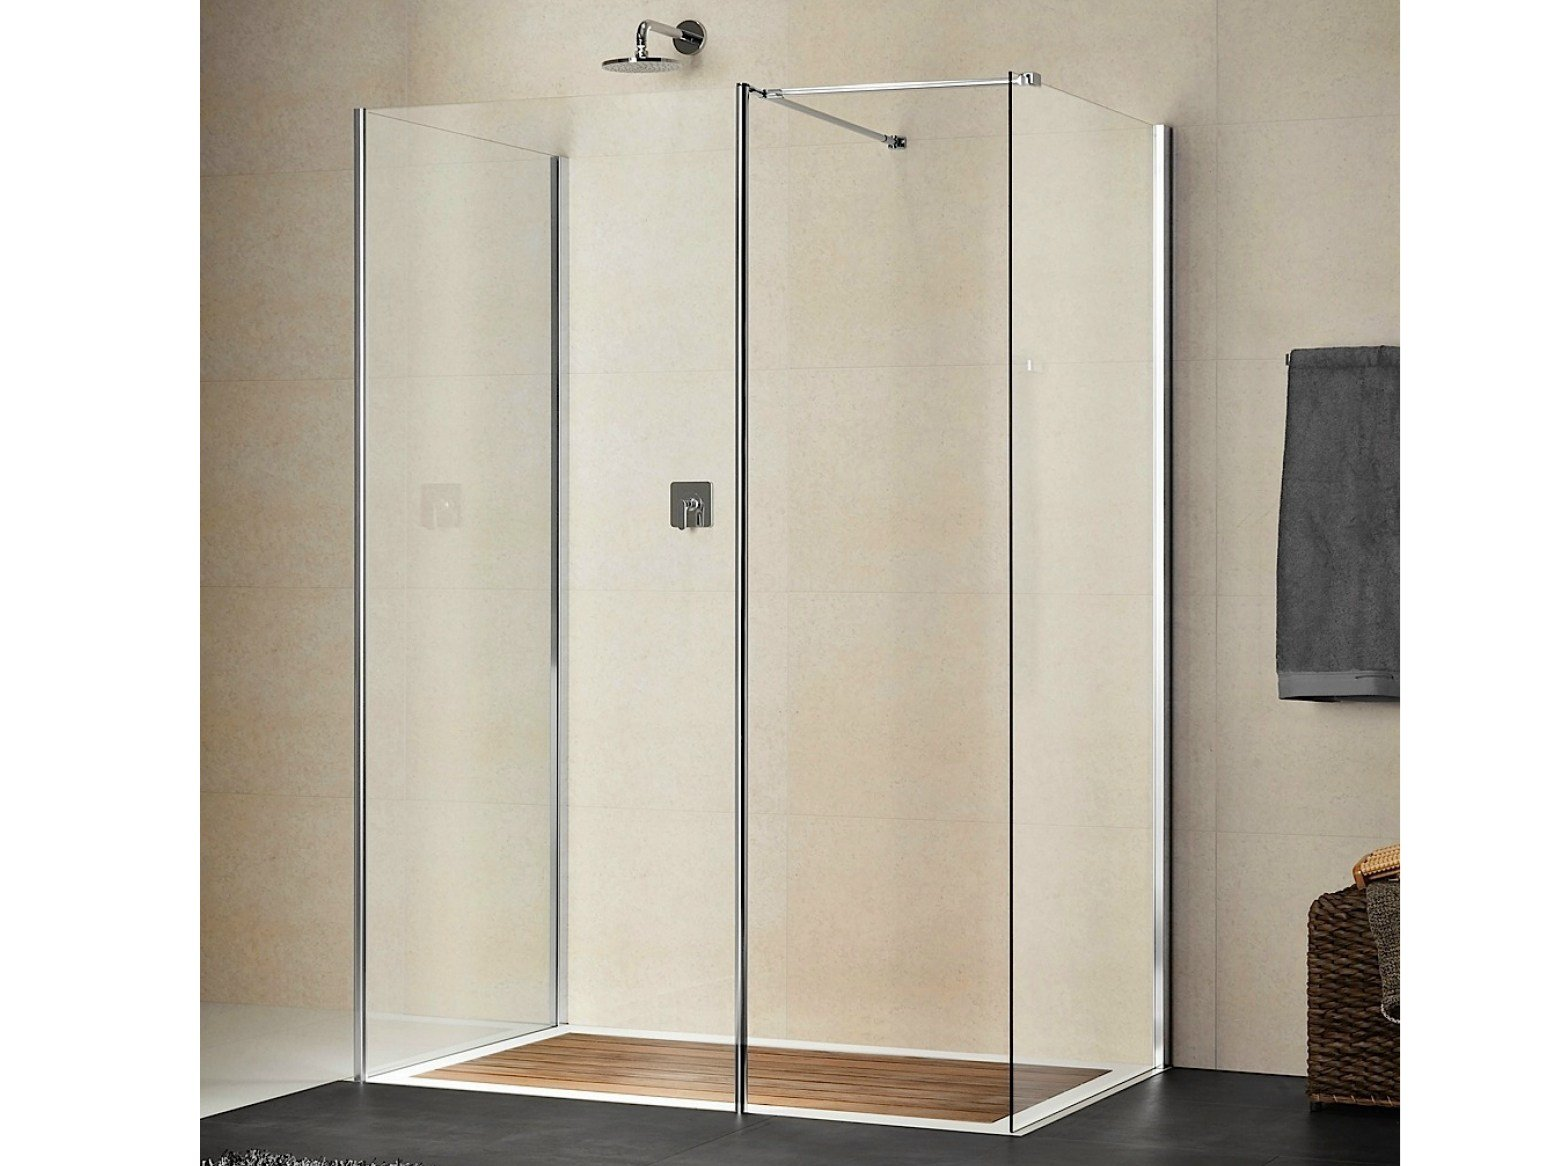 cabine de douche rectangulaire en cristal libero 4000 by duka. Black Bedroom Furniture Sets. Home Design Ideas